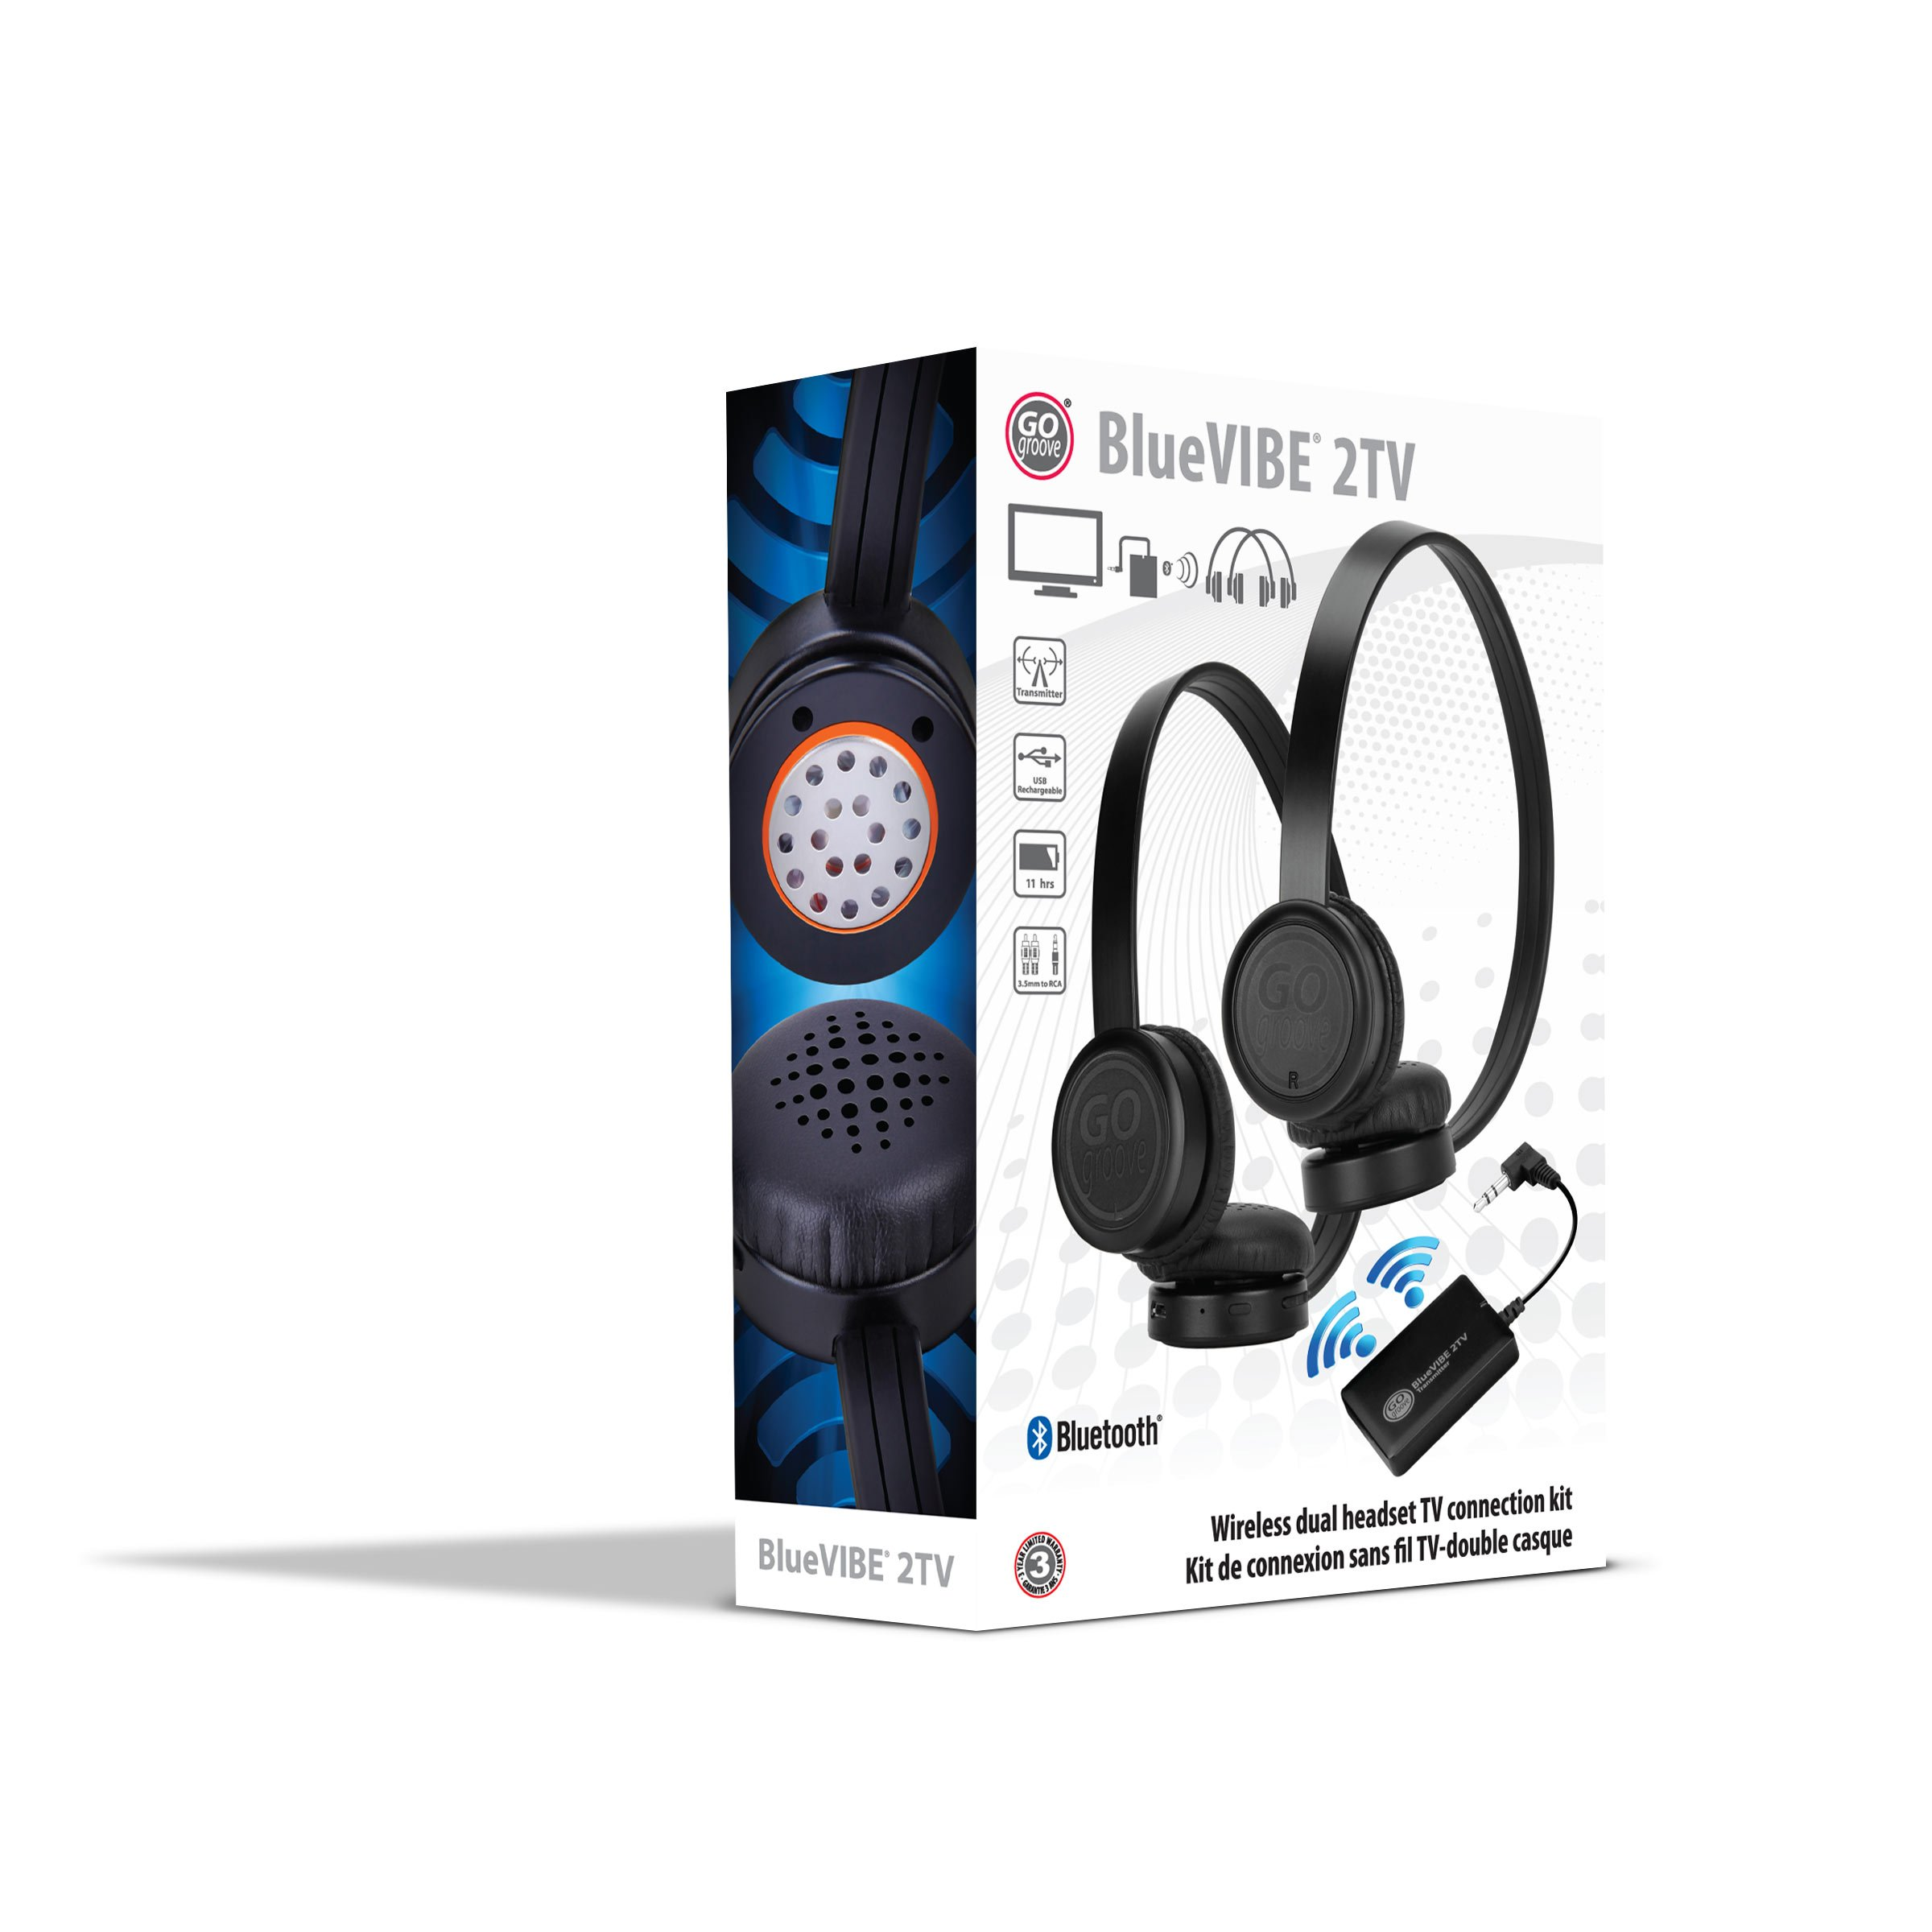 GOgroove BlueVIBE 2 TV Wireless 2 Pair Headphones Television Connection Kit with Plush Lightweight Ear Cups , Bluetooth Transmitter and Easy Setup - Great for Tablet Sharing by Apple, Samsung and More by GOgroove (Image #9)